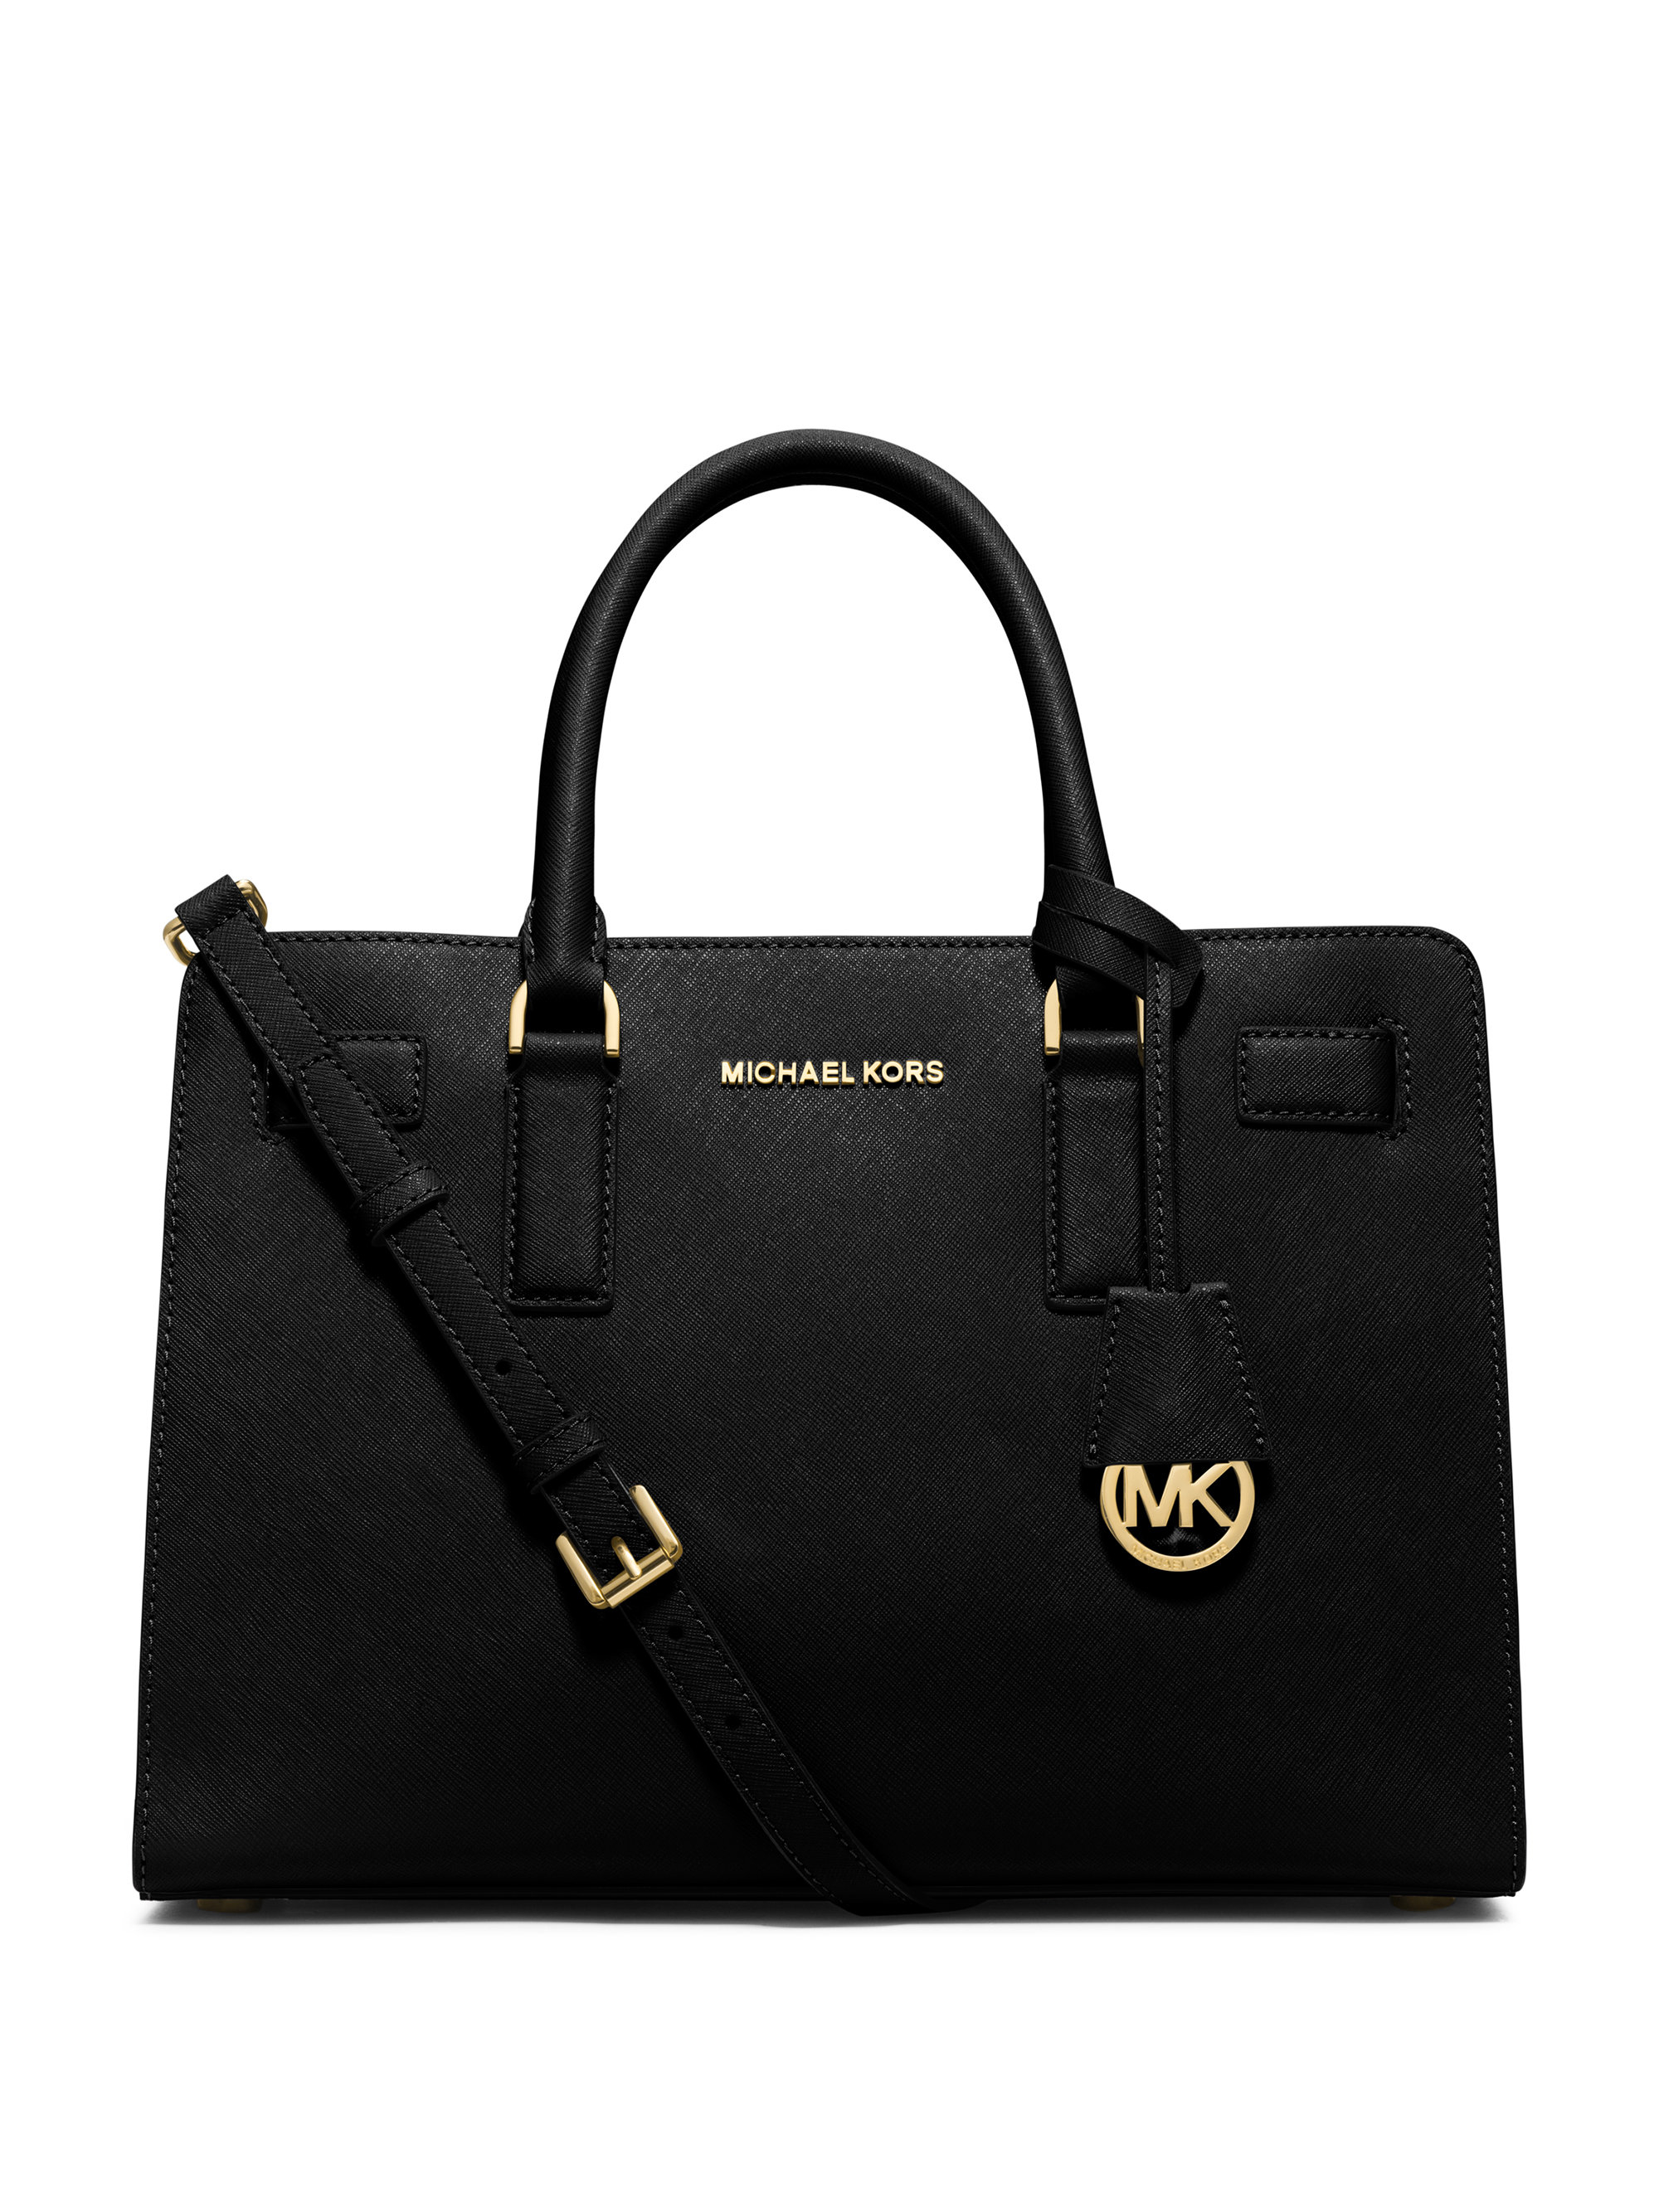 860343e40fd636 Gallery. Previously sold at: Saks Fifth Avenue · Women's Michael By Michael  Kors Dillon ...